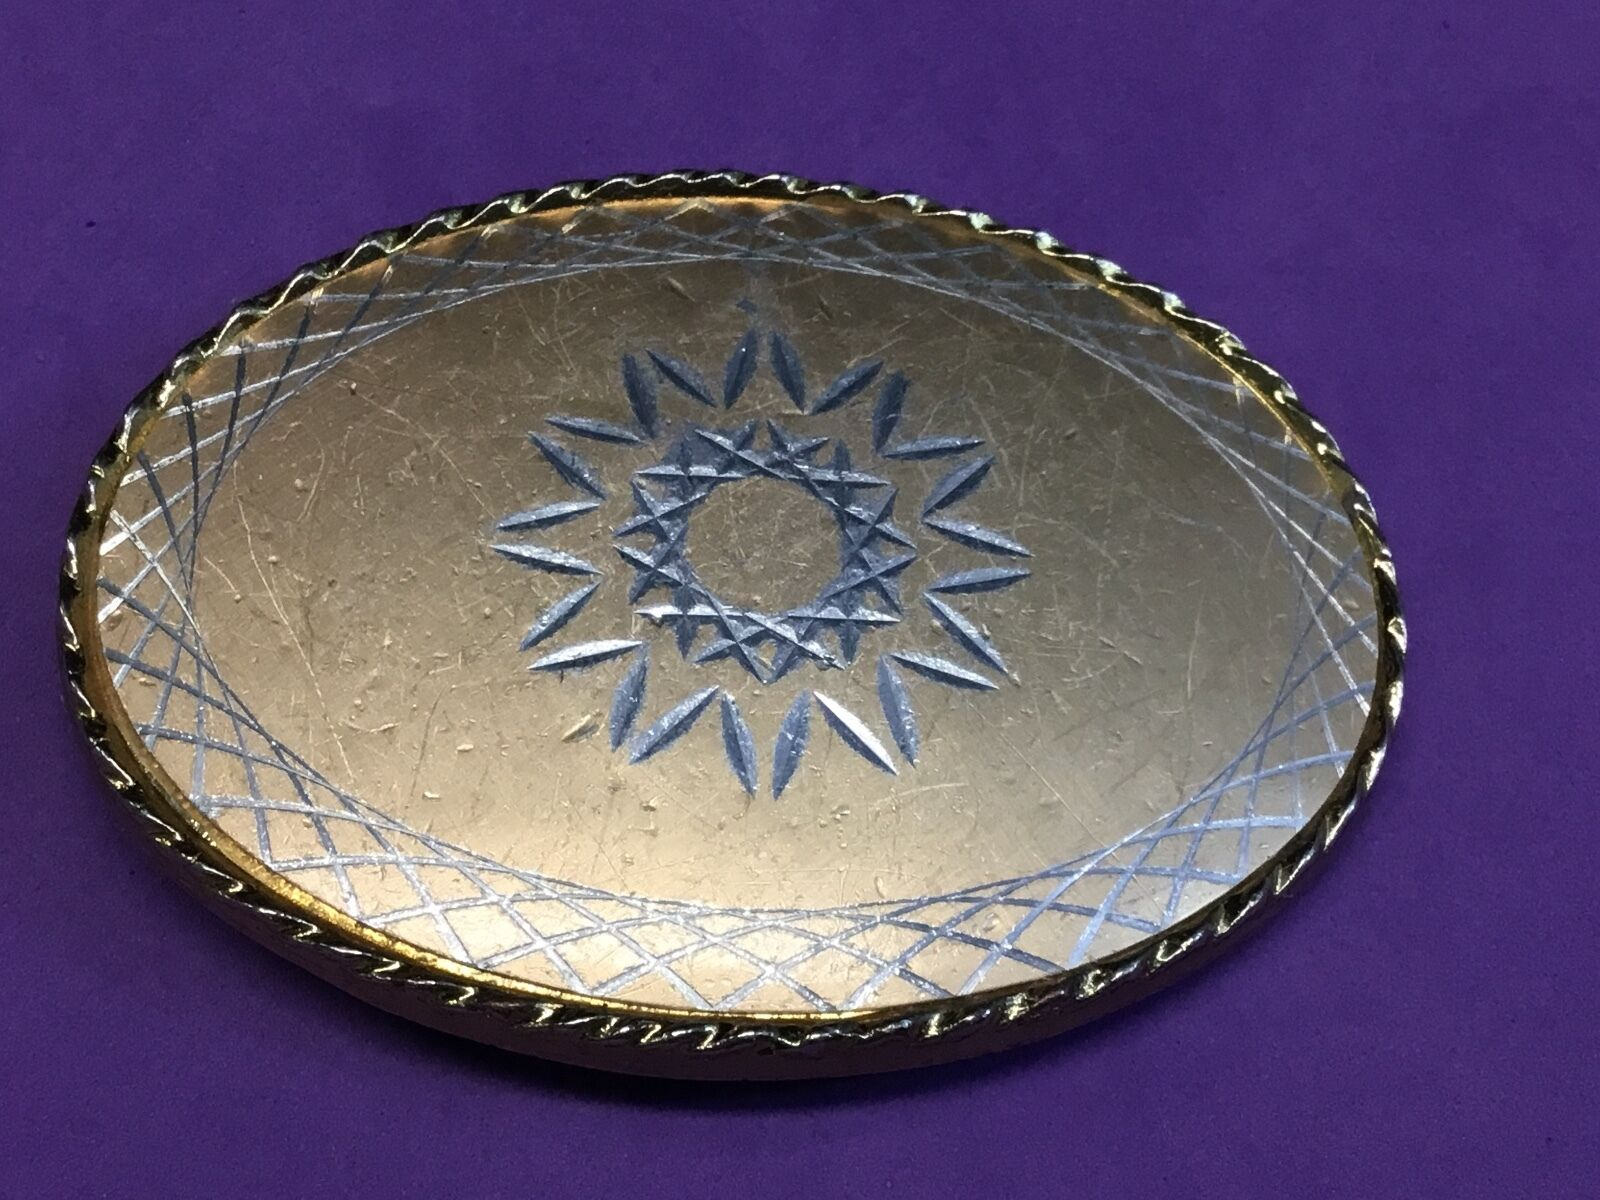 Gold - Tone? etched? pattern belt buckle